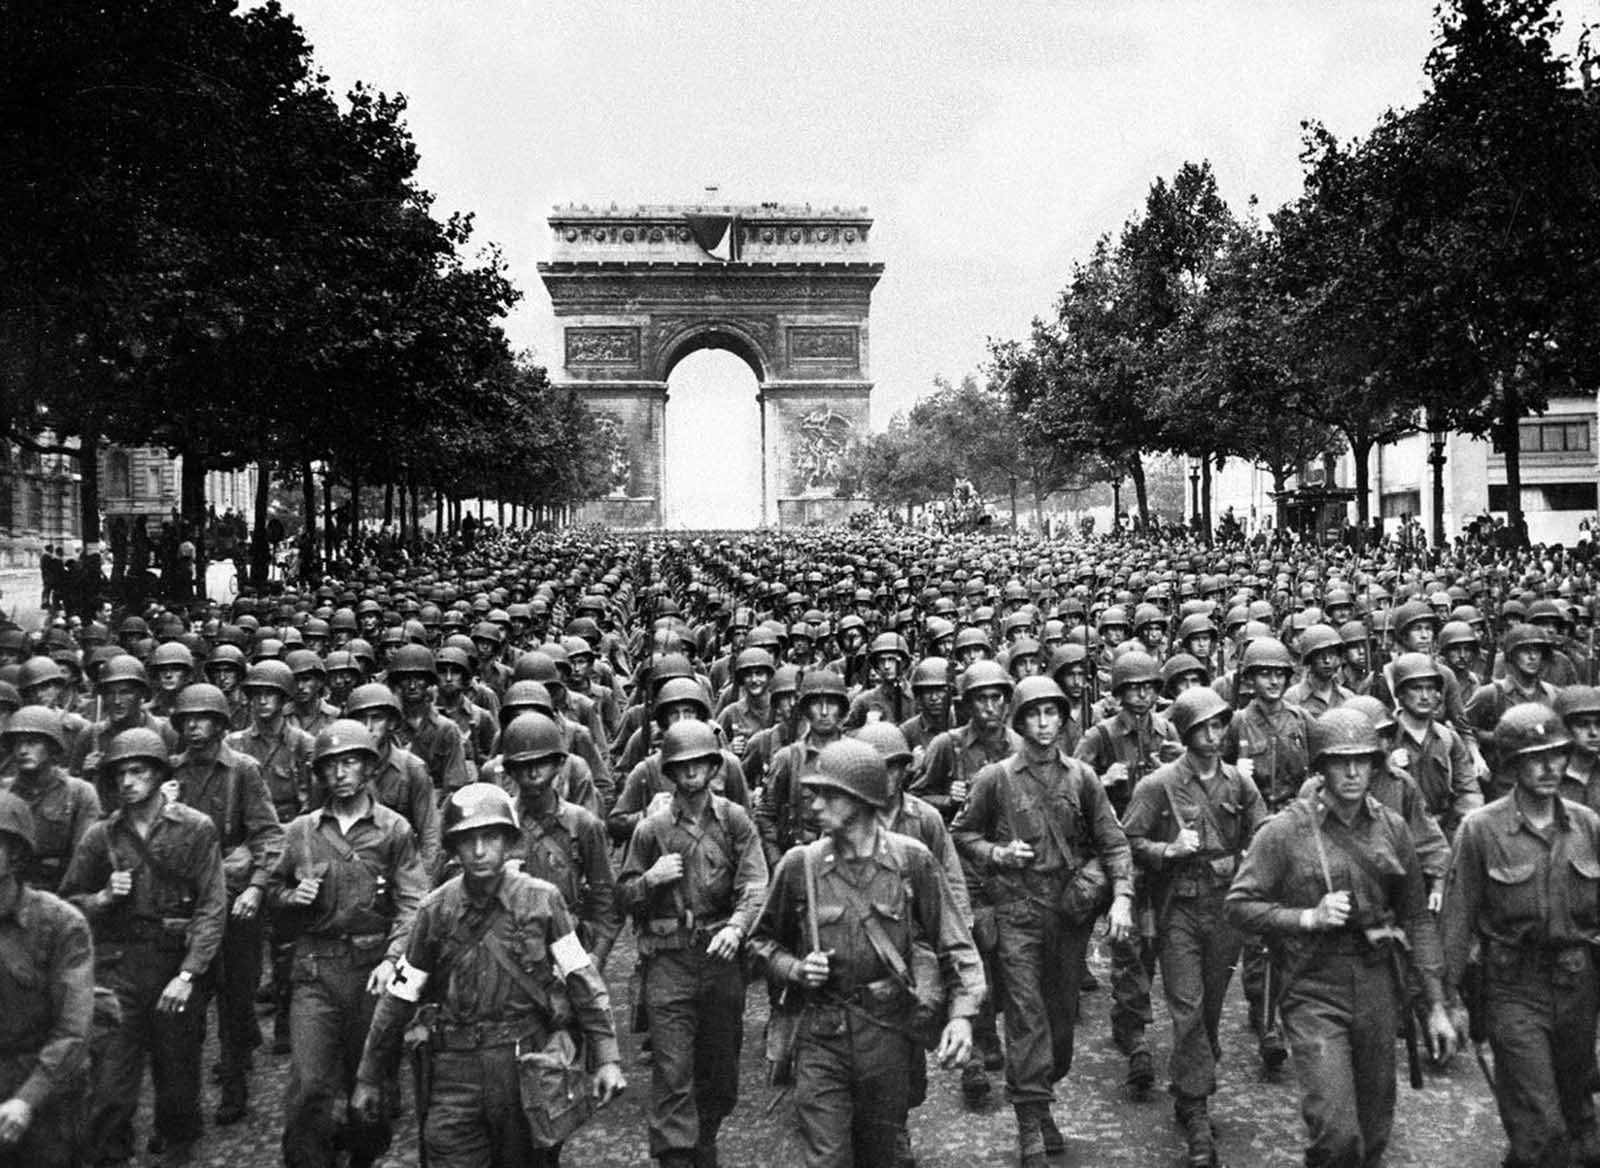 After the French Resistance staged an uprising on August 19, American and Free French troops made a peaceful entrance on August 25, 1944. Here, four days later, soldiers of Pennsylvania's Twenty-eighth Infantry Division march along the Champs-Elysees, with the Arc de Triomphe in the background.